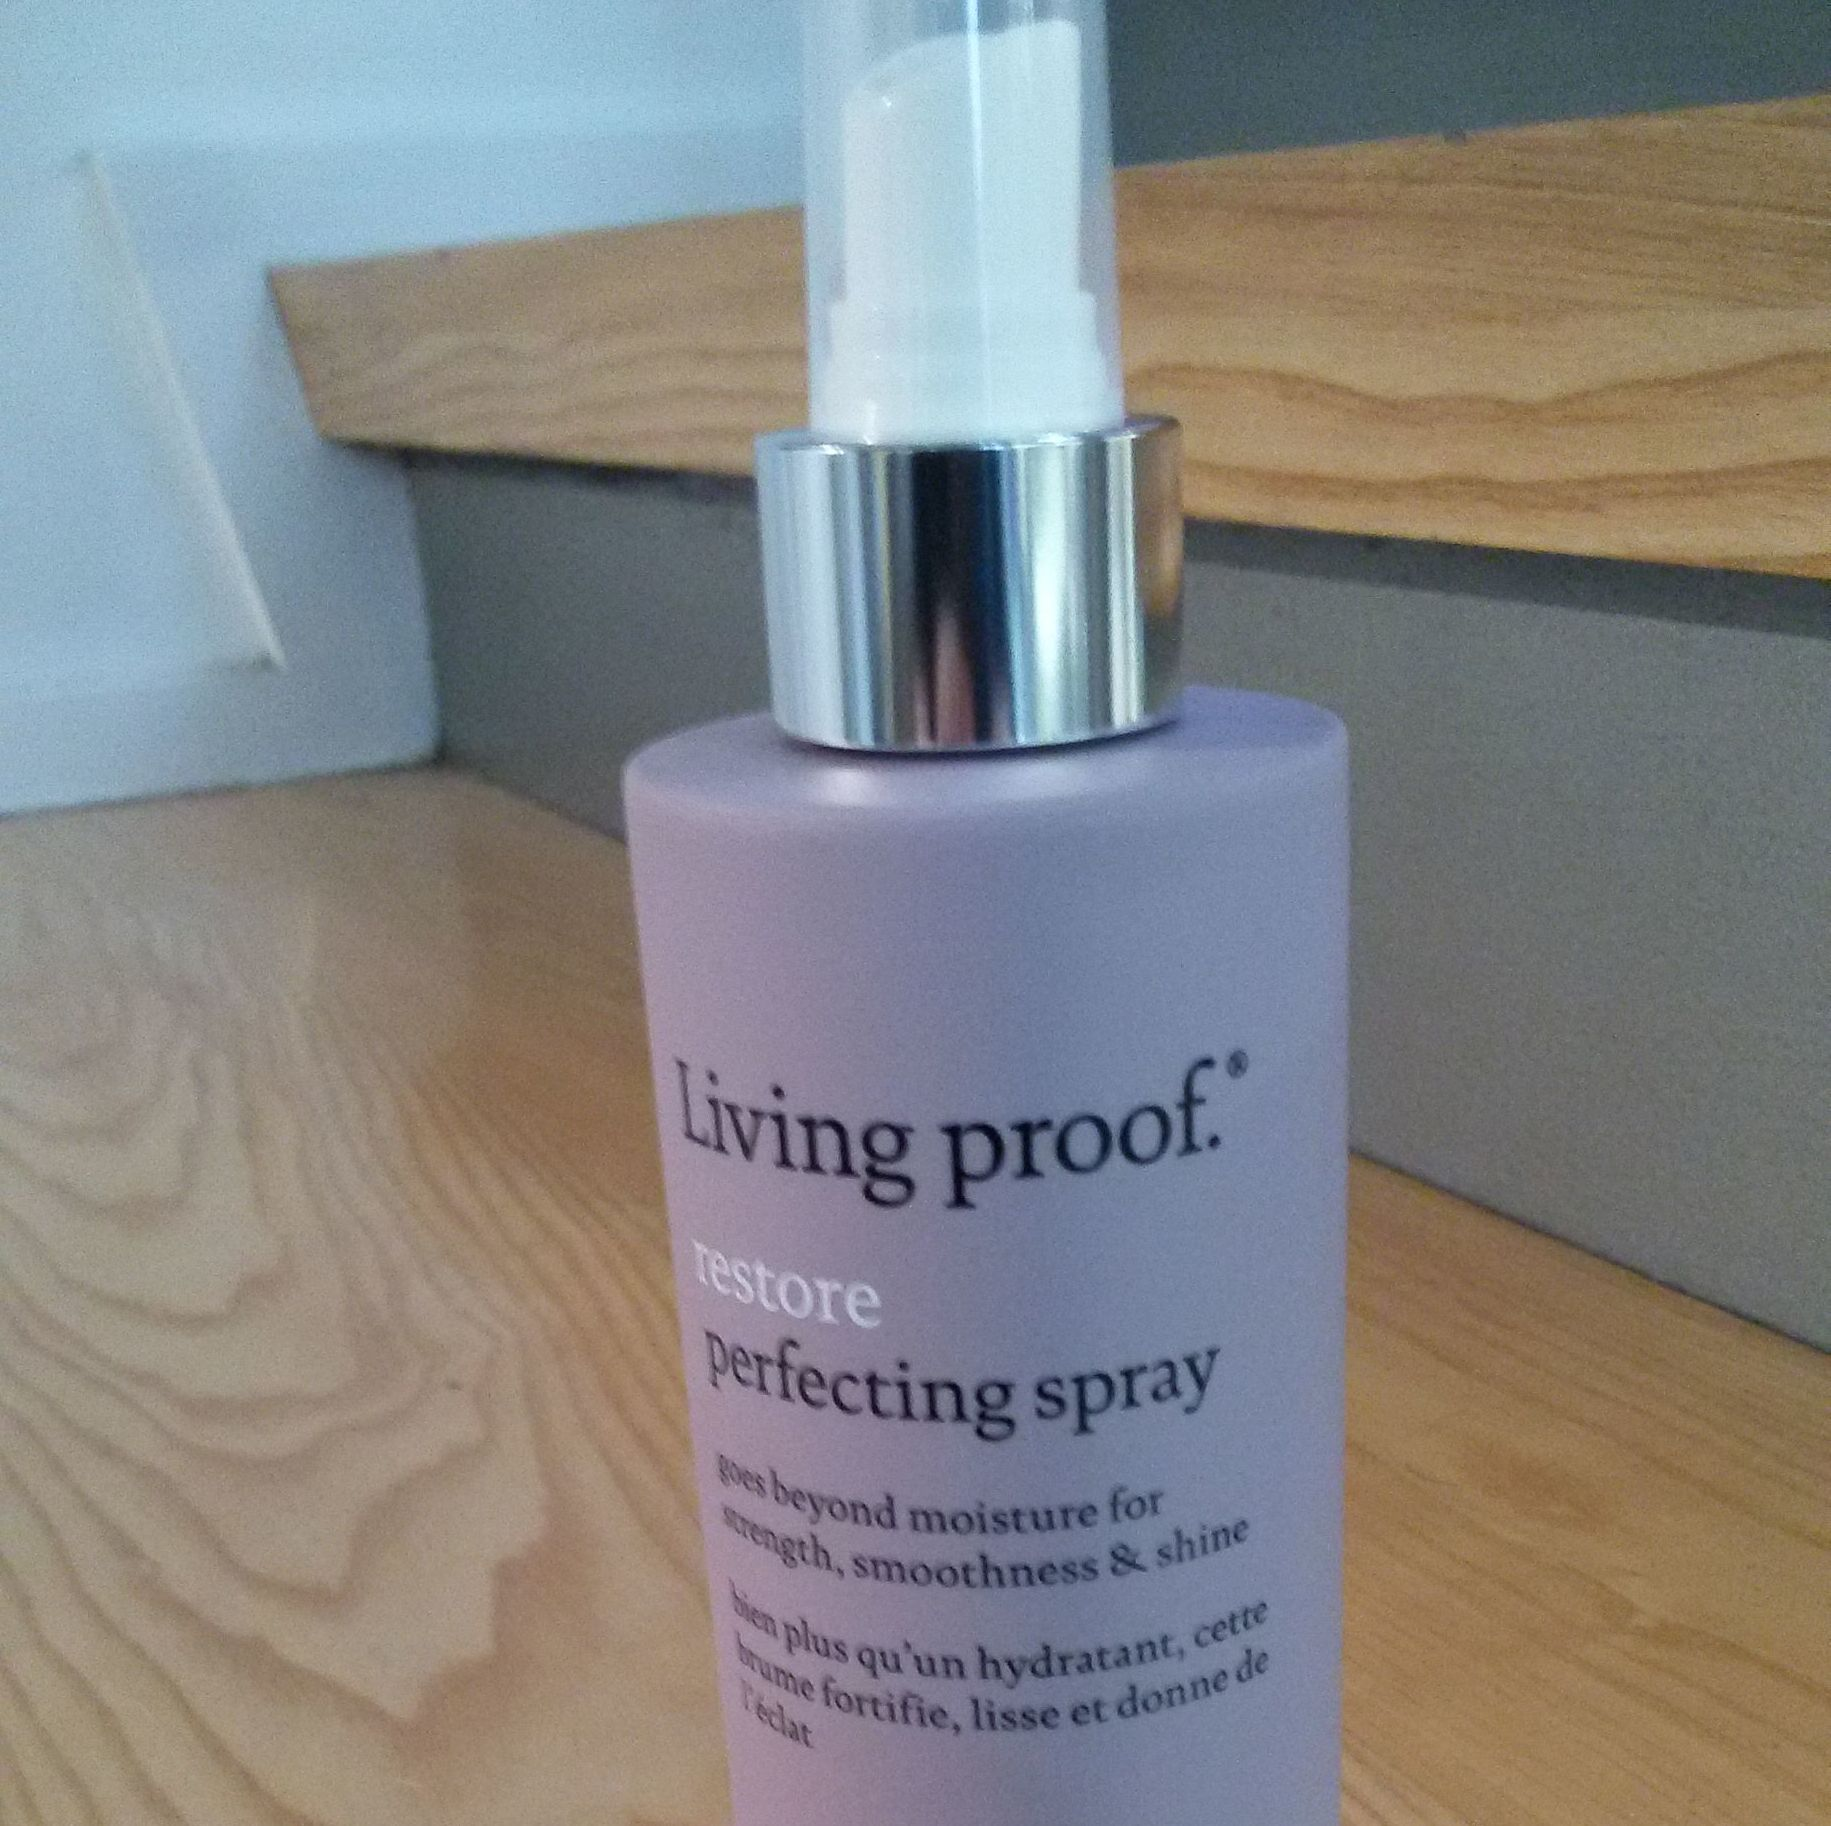 Perfecting spray